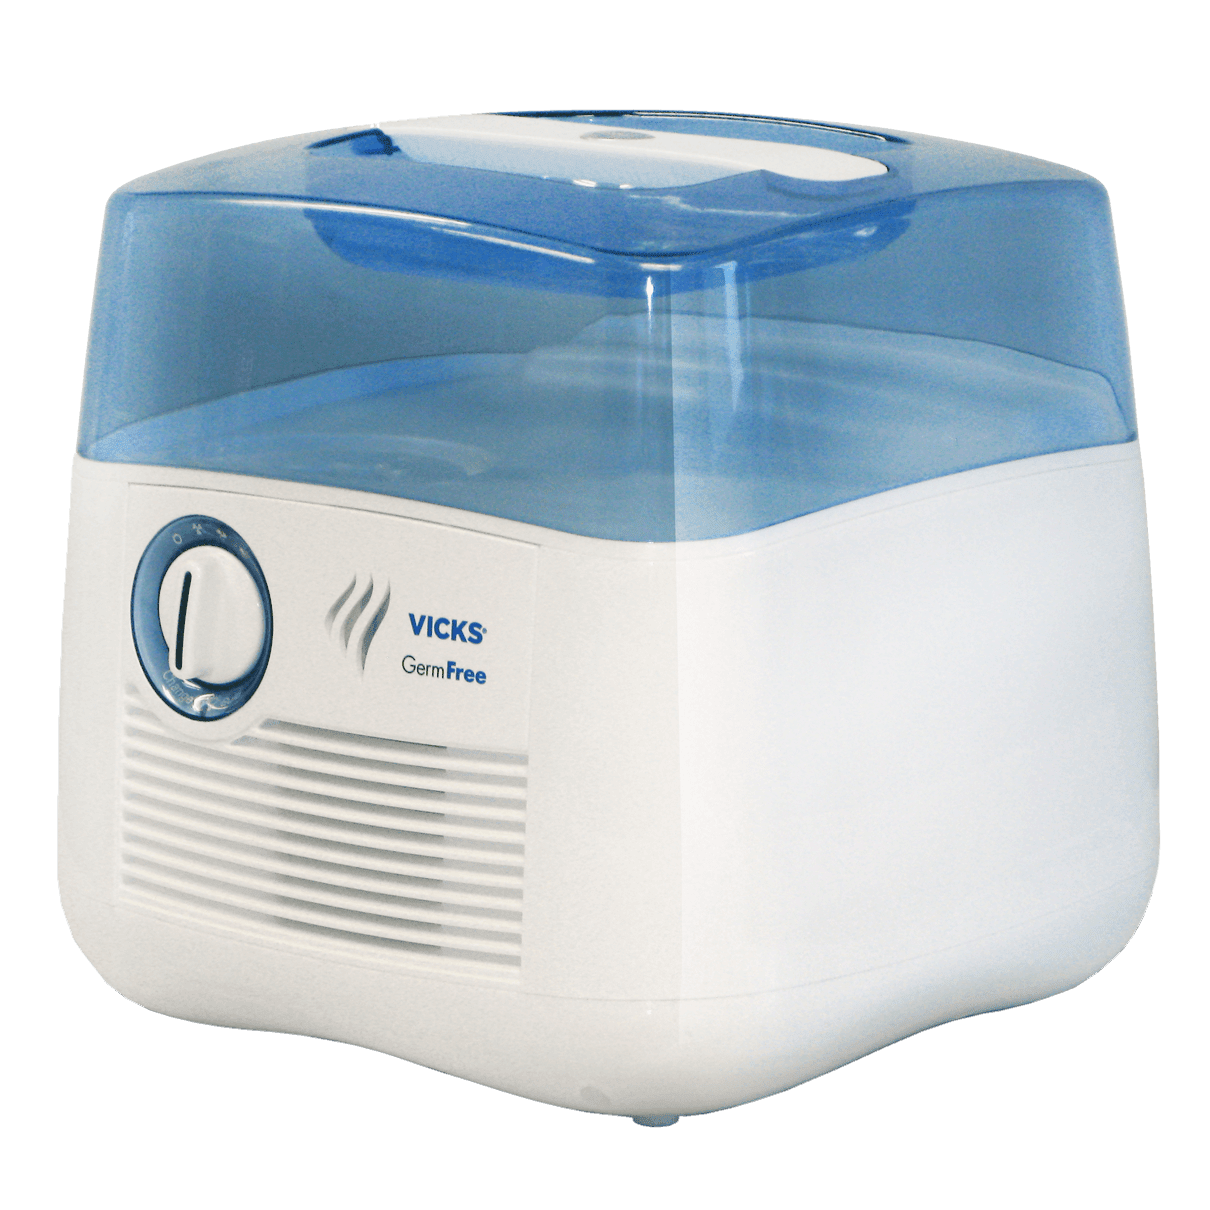 Vicks Filter Free Humidifier, WhiteBlue, 1 Count